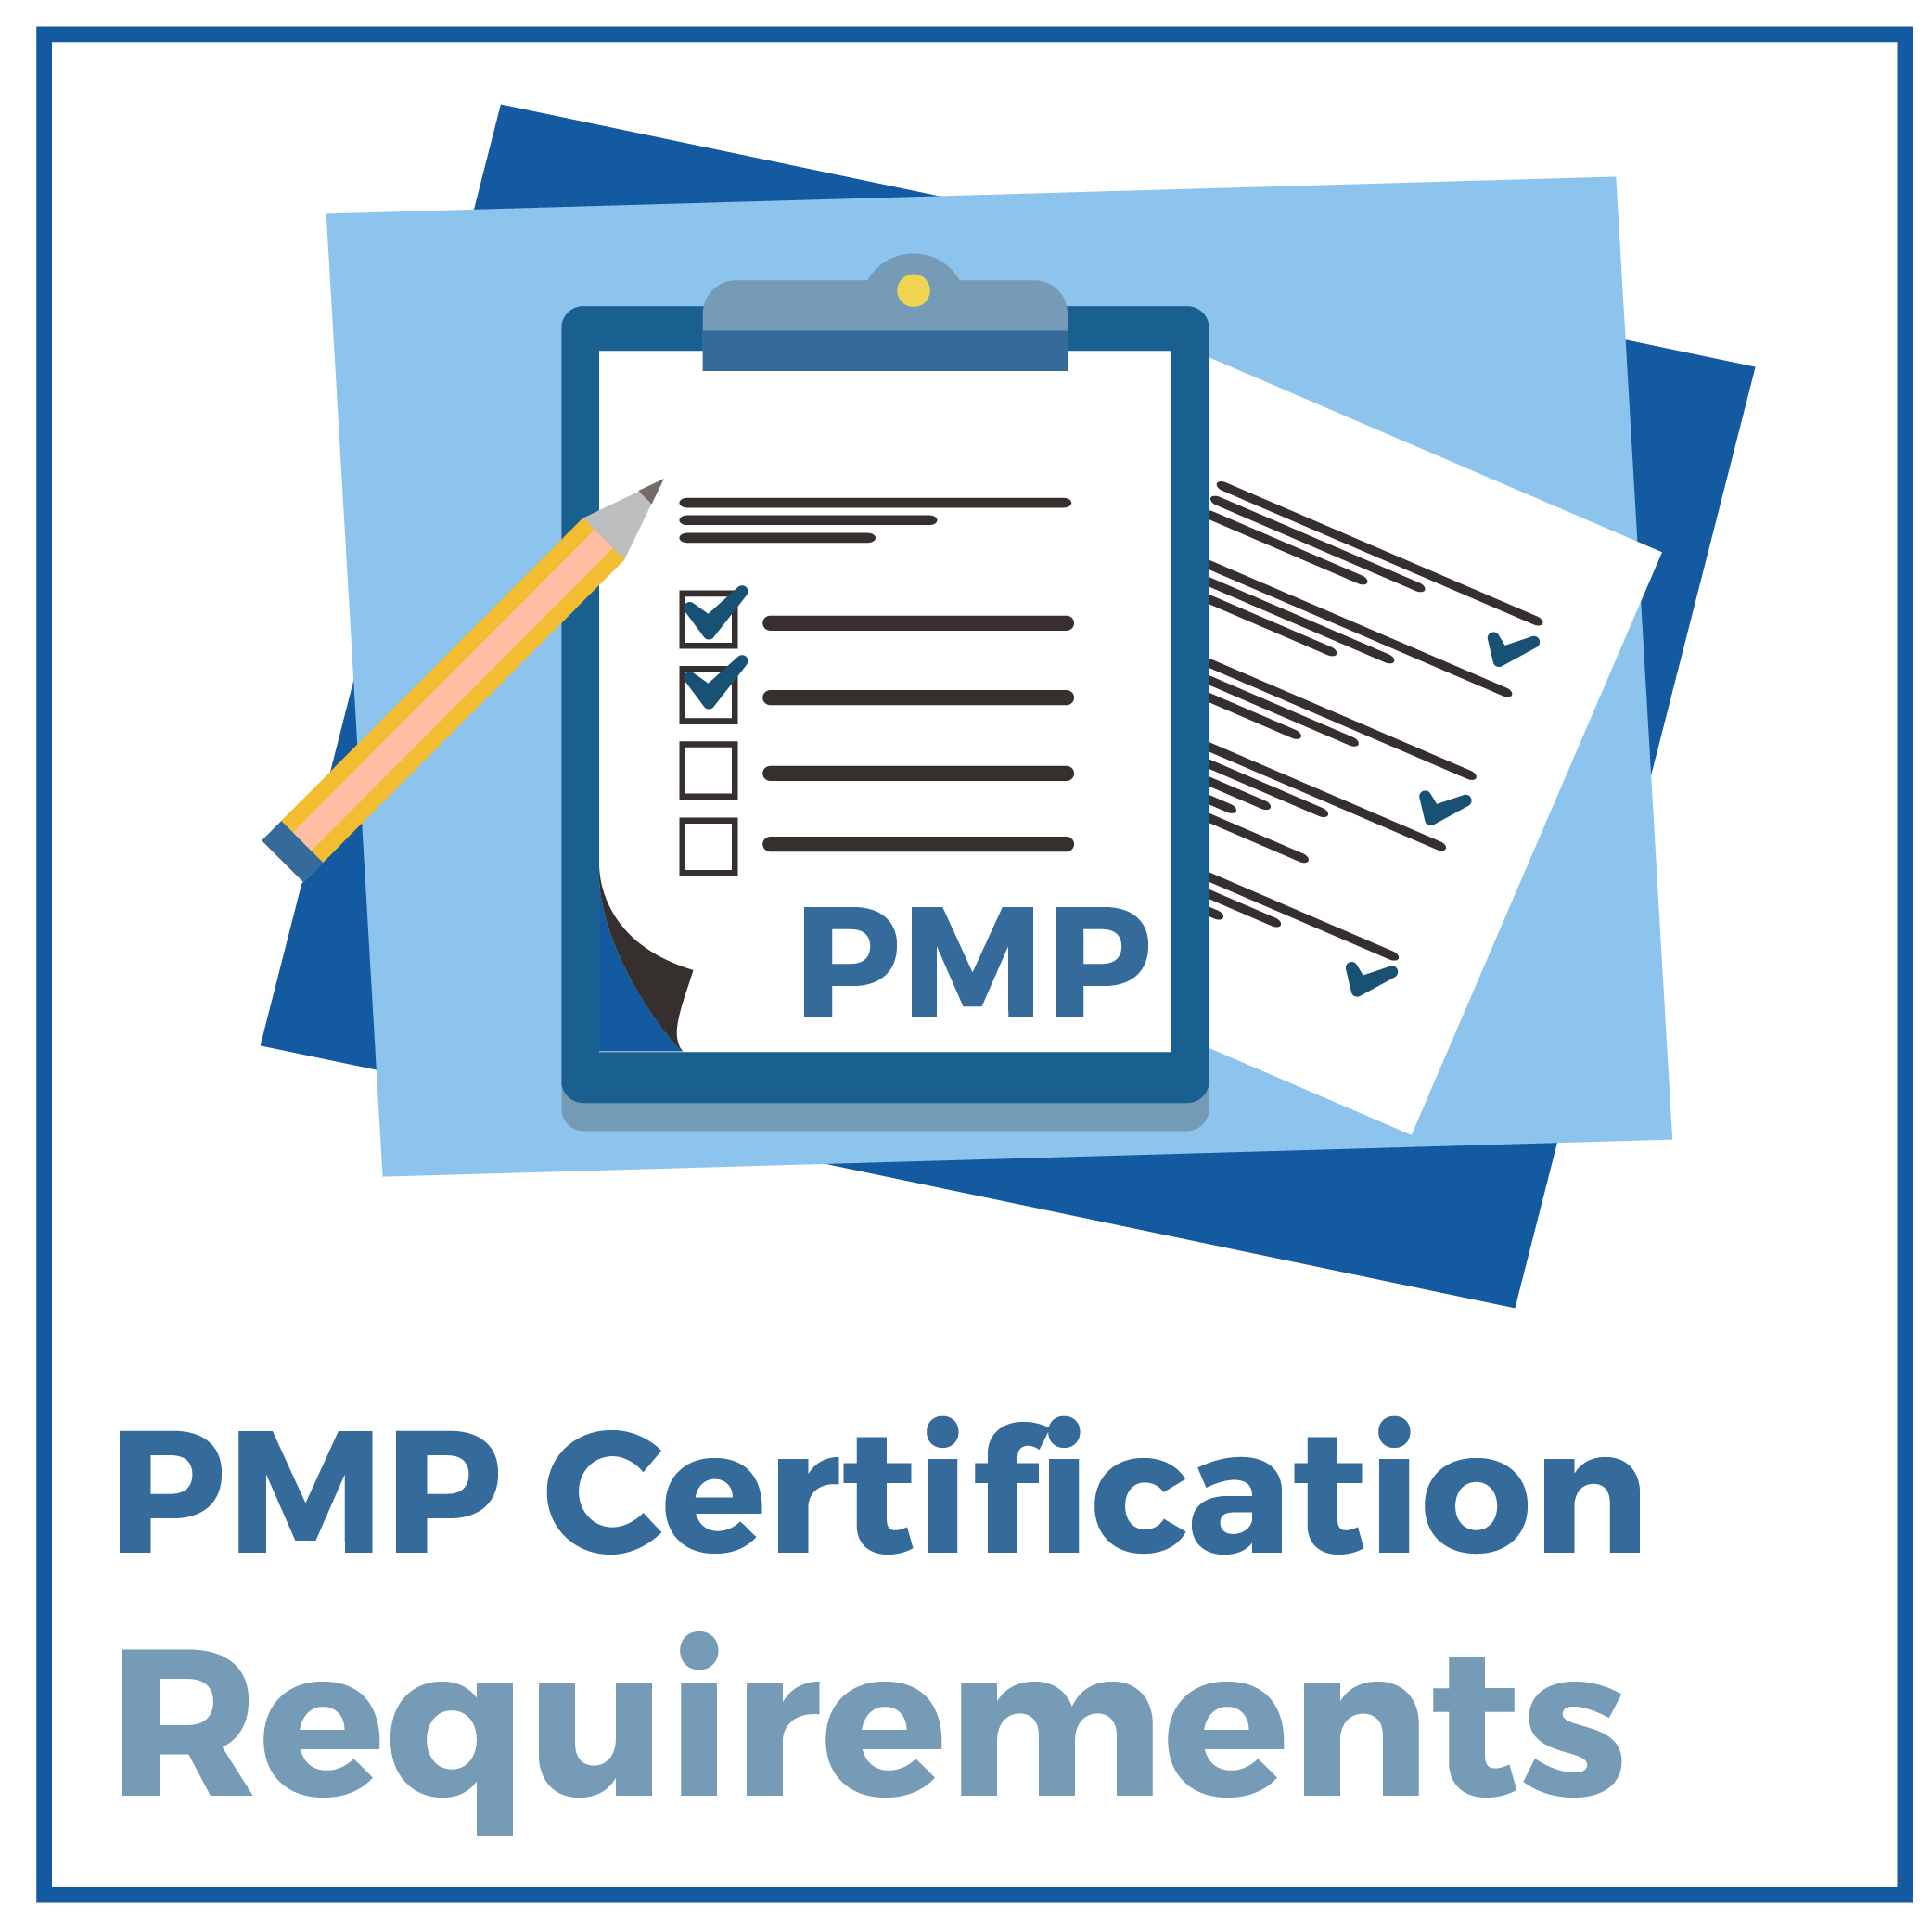 Pmp Certification Requirements Do You Meet Them Complete